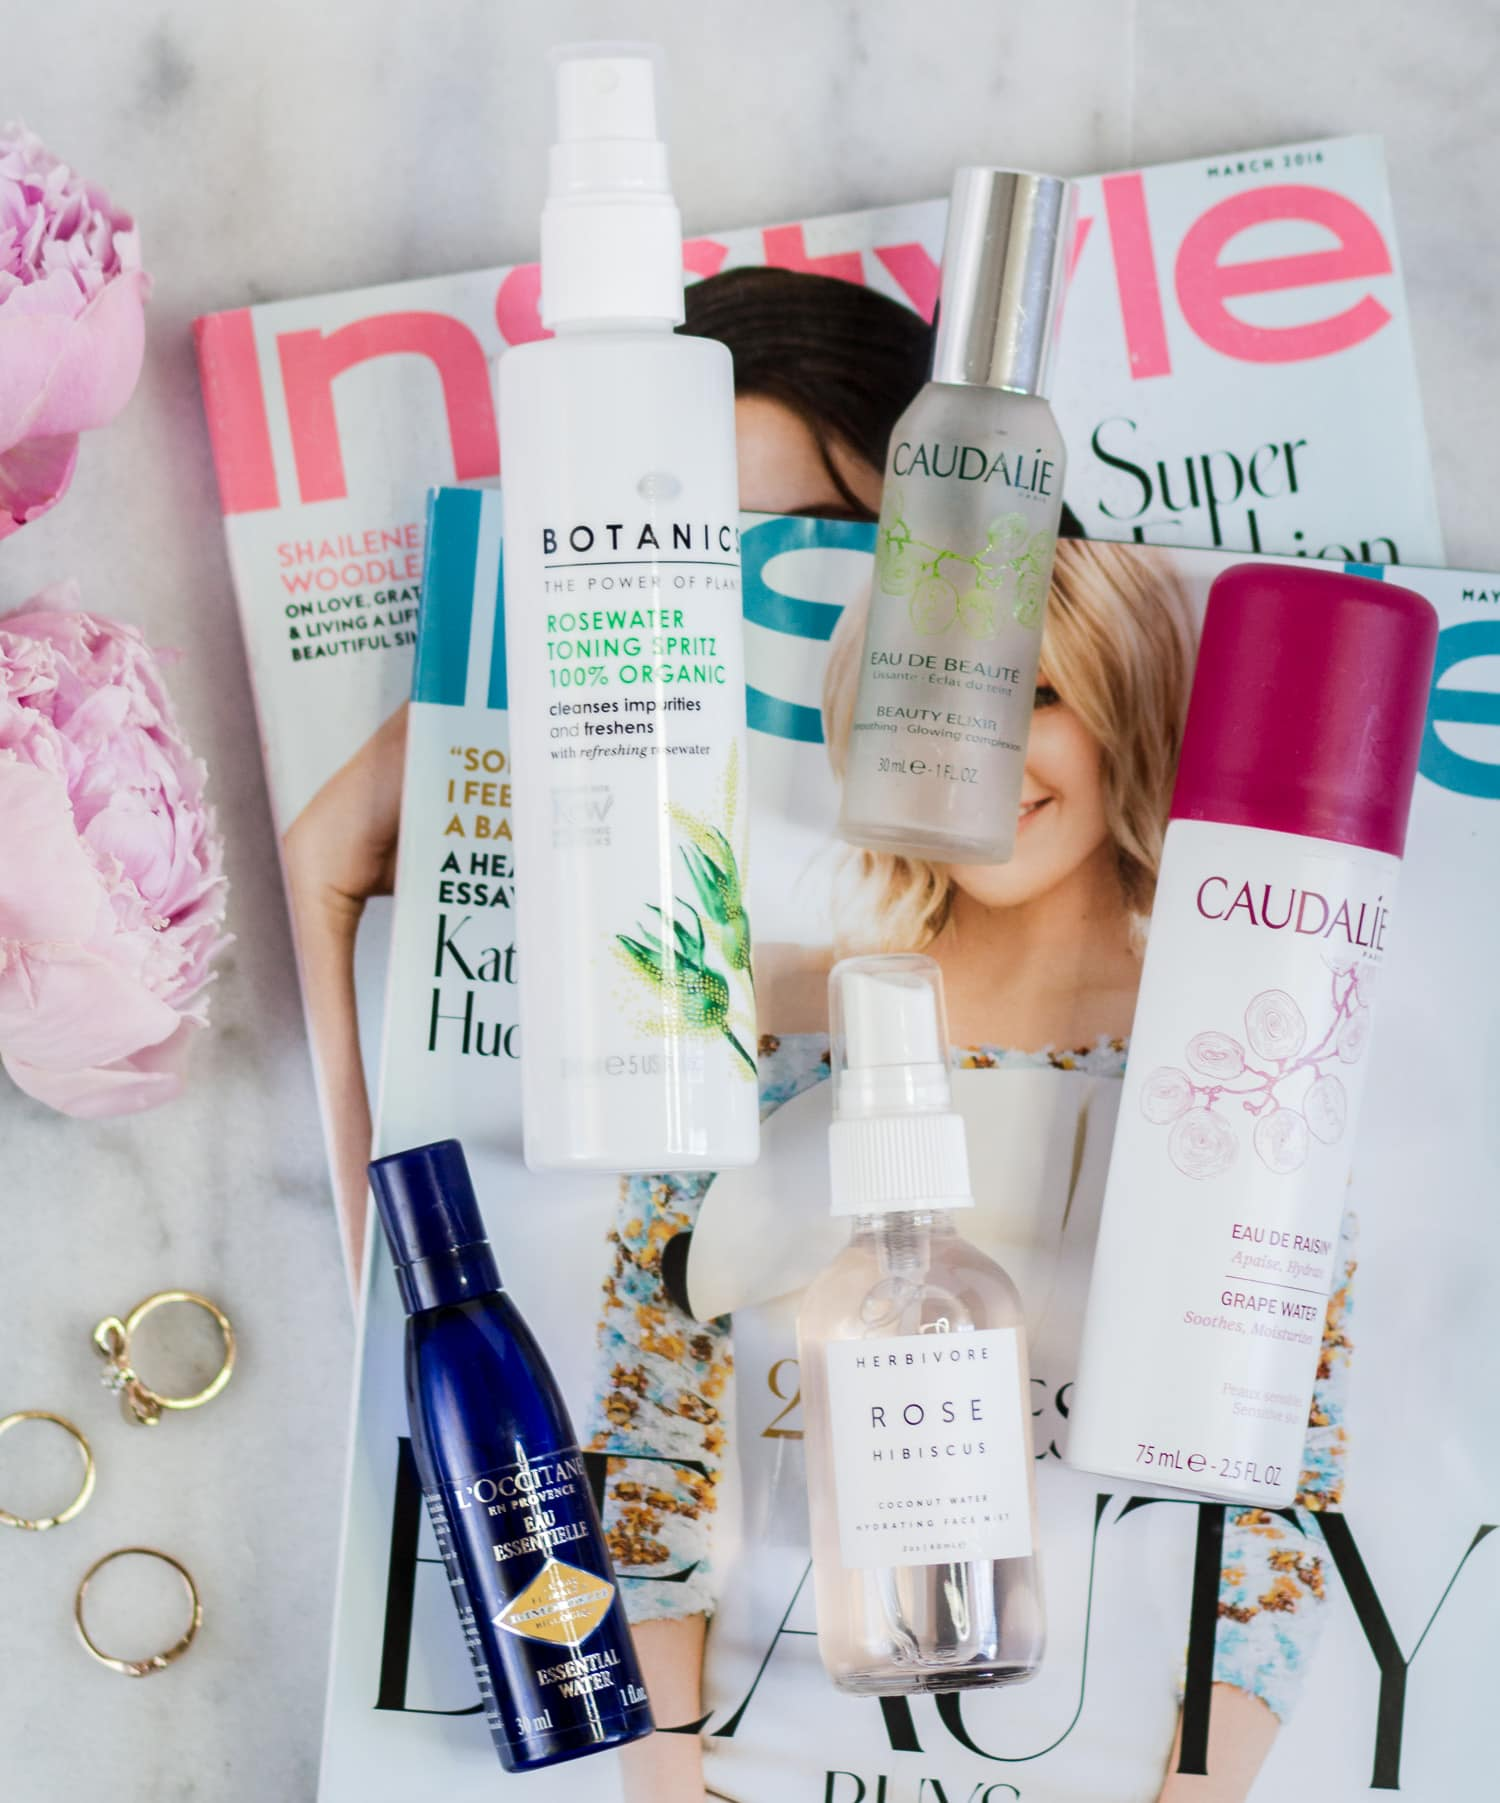 The best new skincare products for women in their 20s - including the best facial mists + a review of Boots Botanics Organic Rosewater Toning Spritz, Caudalie Beauty Elixir, Caudalie Grape Water, Herbivore Rose Hibiscus Coconut Water Hydrating Face Mist, and L'Occitane Immortelle Essential Water by beauty blogger Ashley Brooke Nicholas